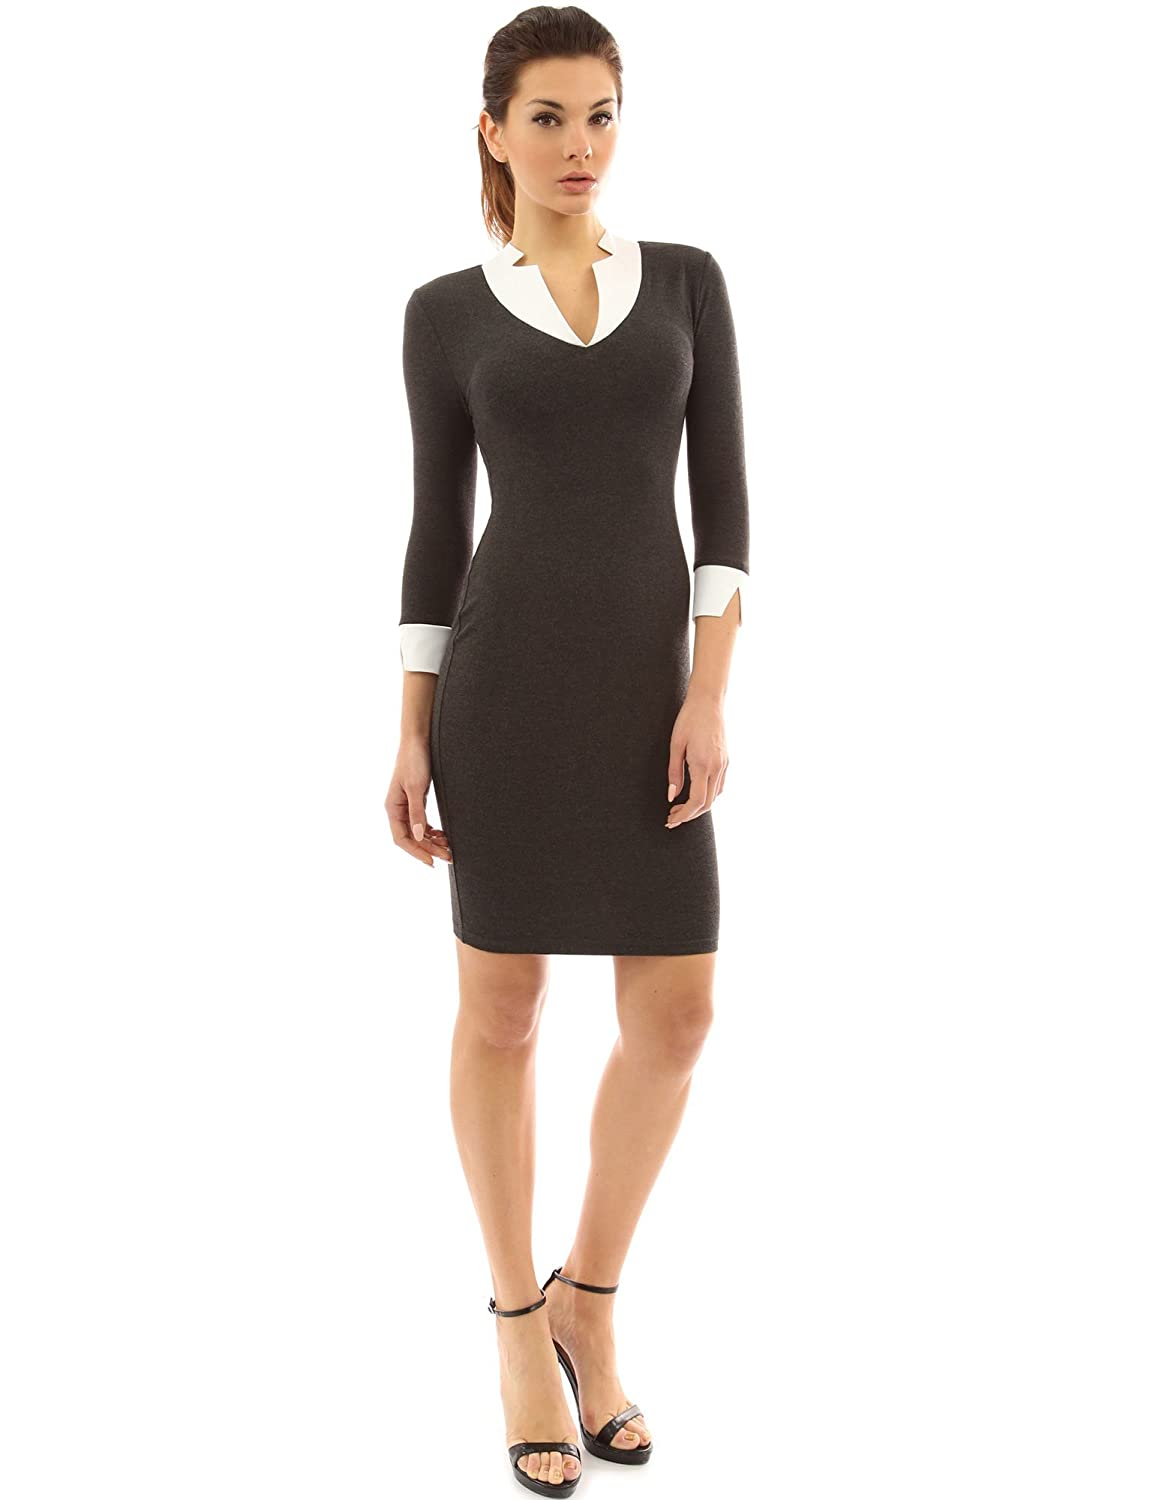 PattyBoutik Women's 2 in 1 Style Inset Stretch Dress